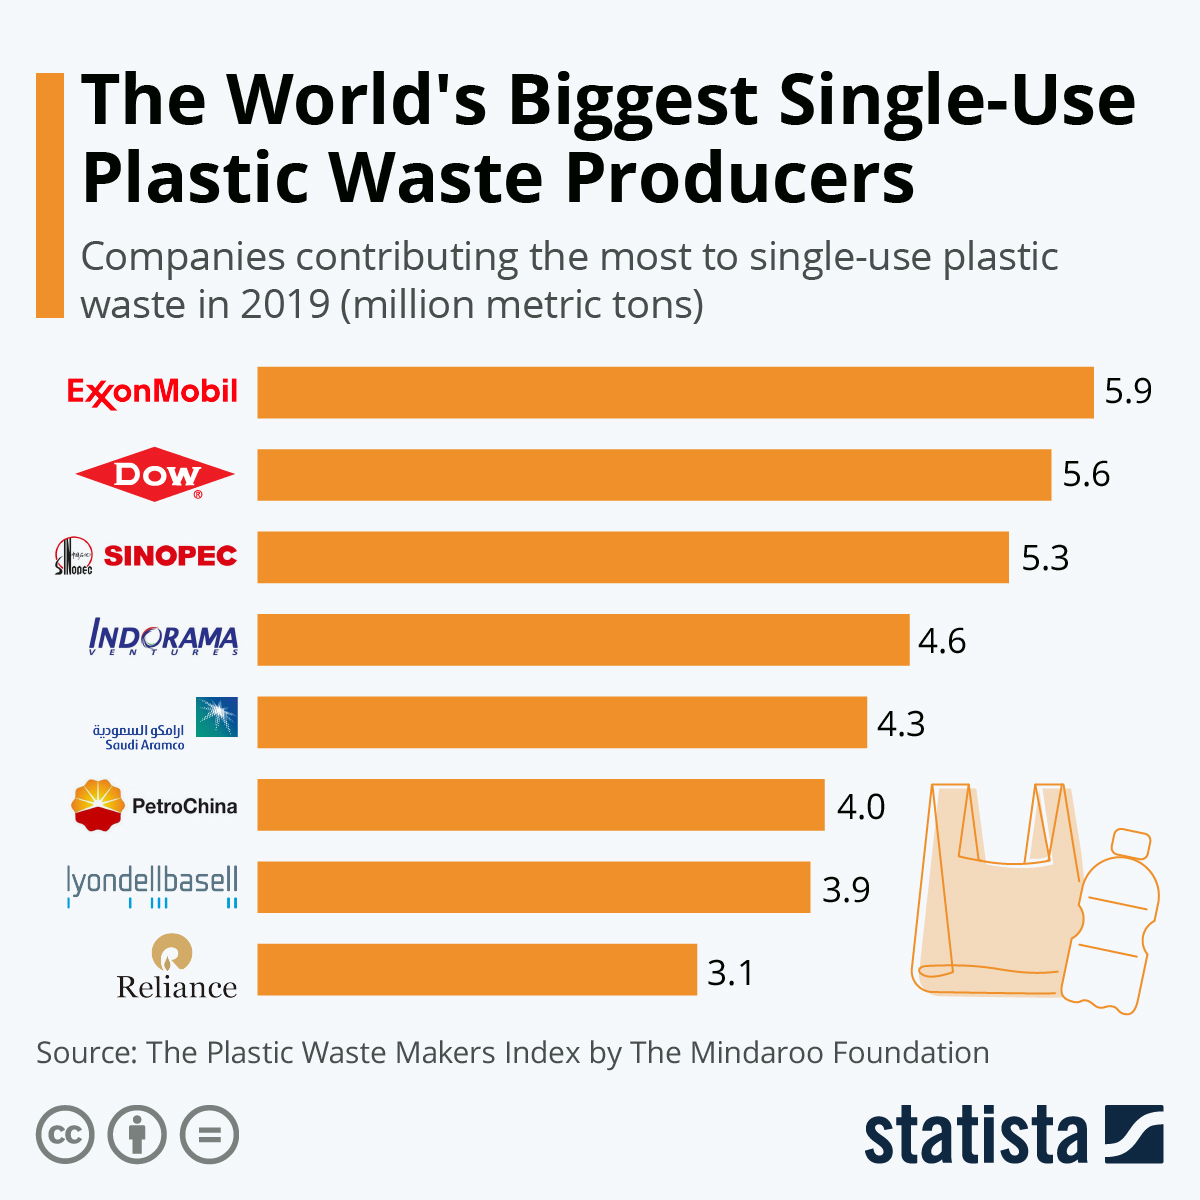 Which company produces the most single-use plastic waste?